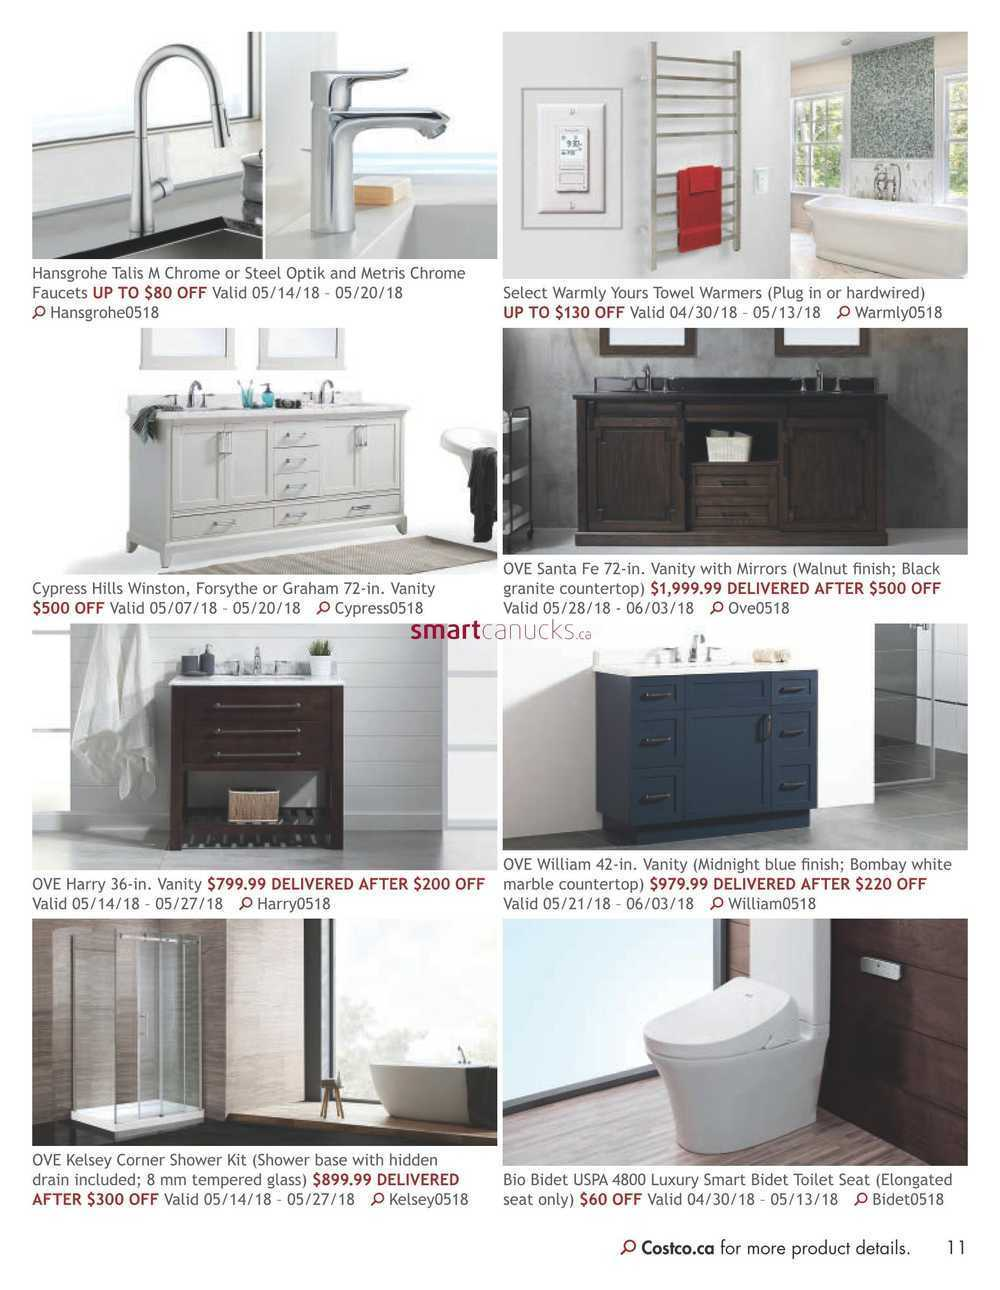 giagni menards faucet lowes kitchen water costco kohler down pfister create sink faucets home with ideas dream bathroom pull your fauce fossett depot delta